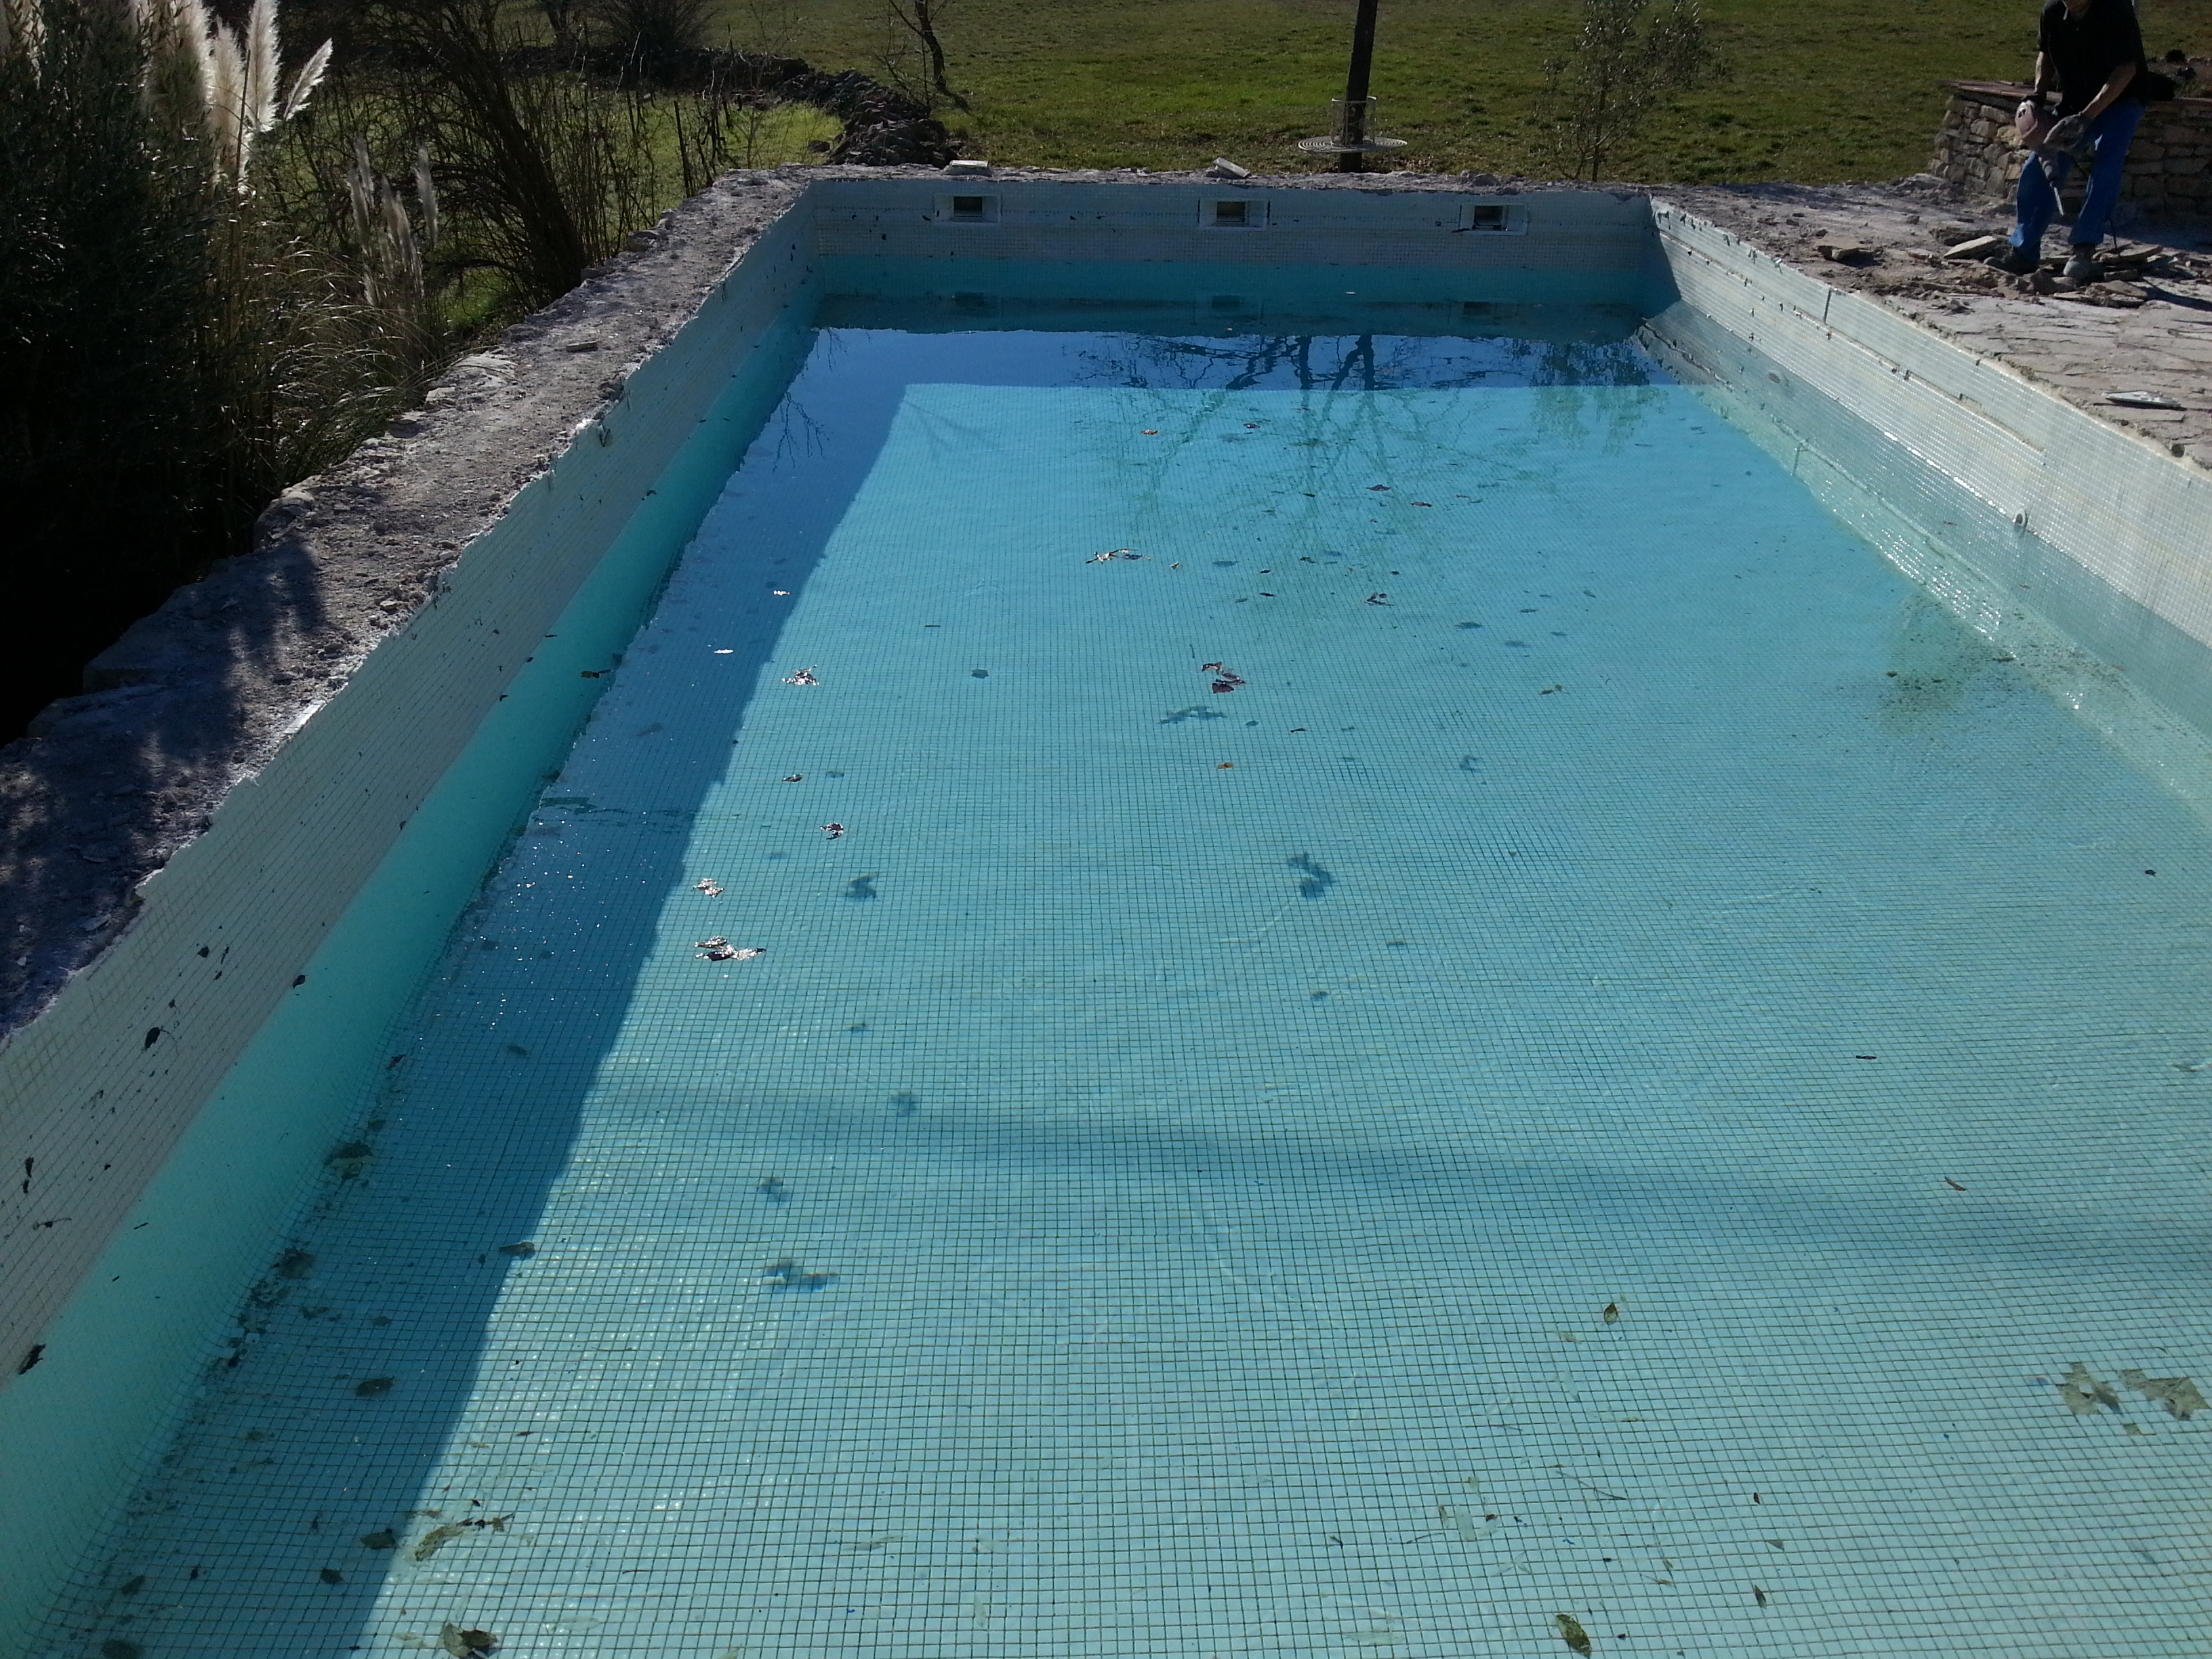 Installation piscines n mes gepad piscines 30 000 n mes Amenagement piscine hors sol